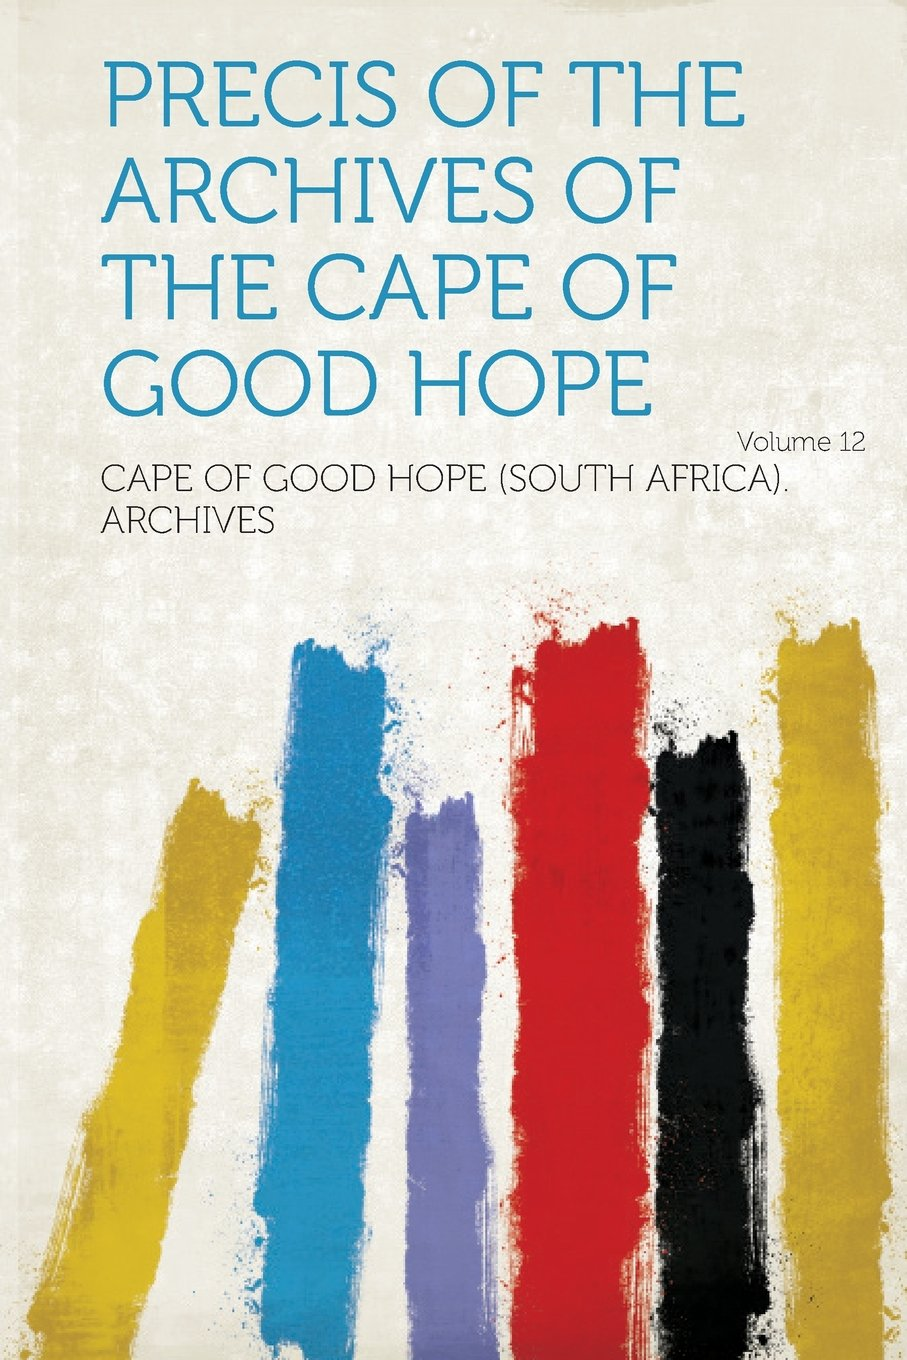 Download Precis of the Archives of the Cape of Good Hope Volume 12 pdf